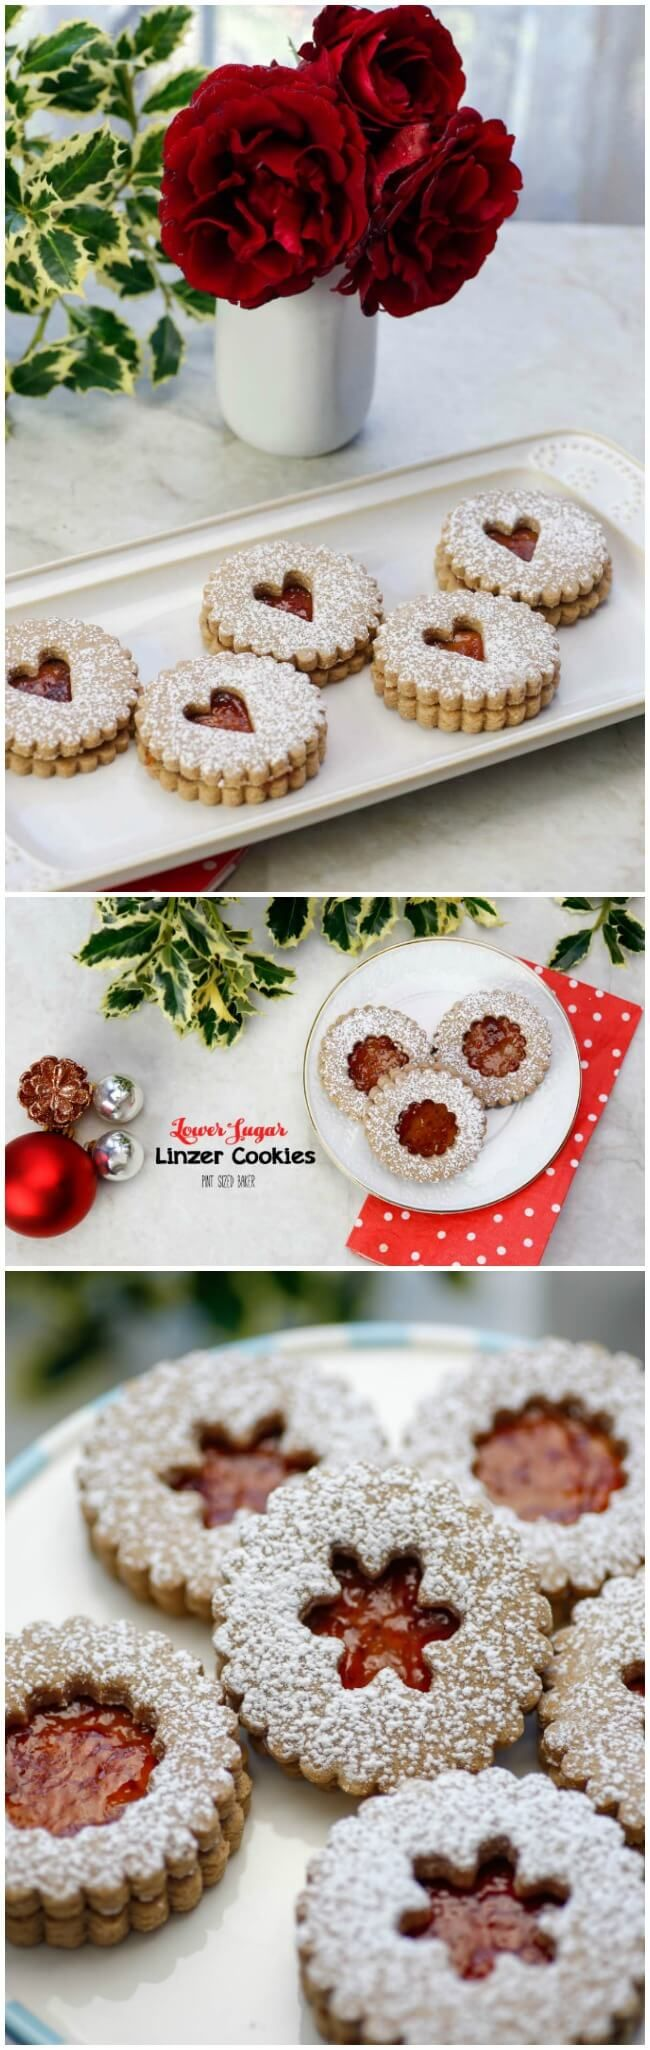 Now you can enjoy your cookies without the guilt with this Lower Sugar Linzer Cookie Recipe. Swap out half the sugar with Stevia @intherawbrand for less sugar and calories!